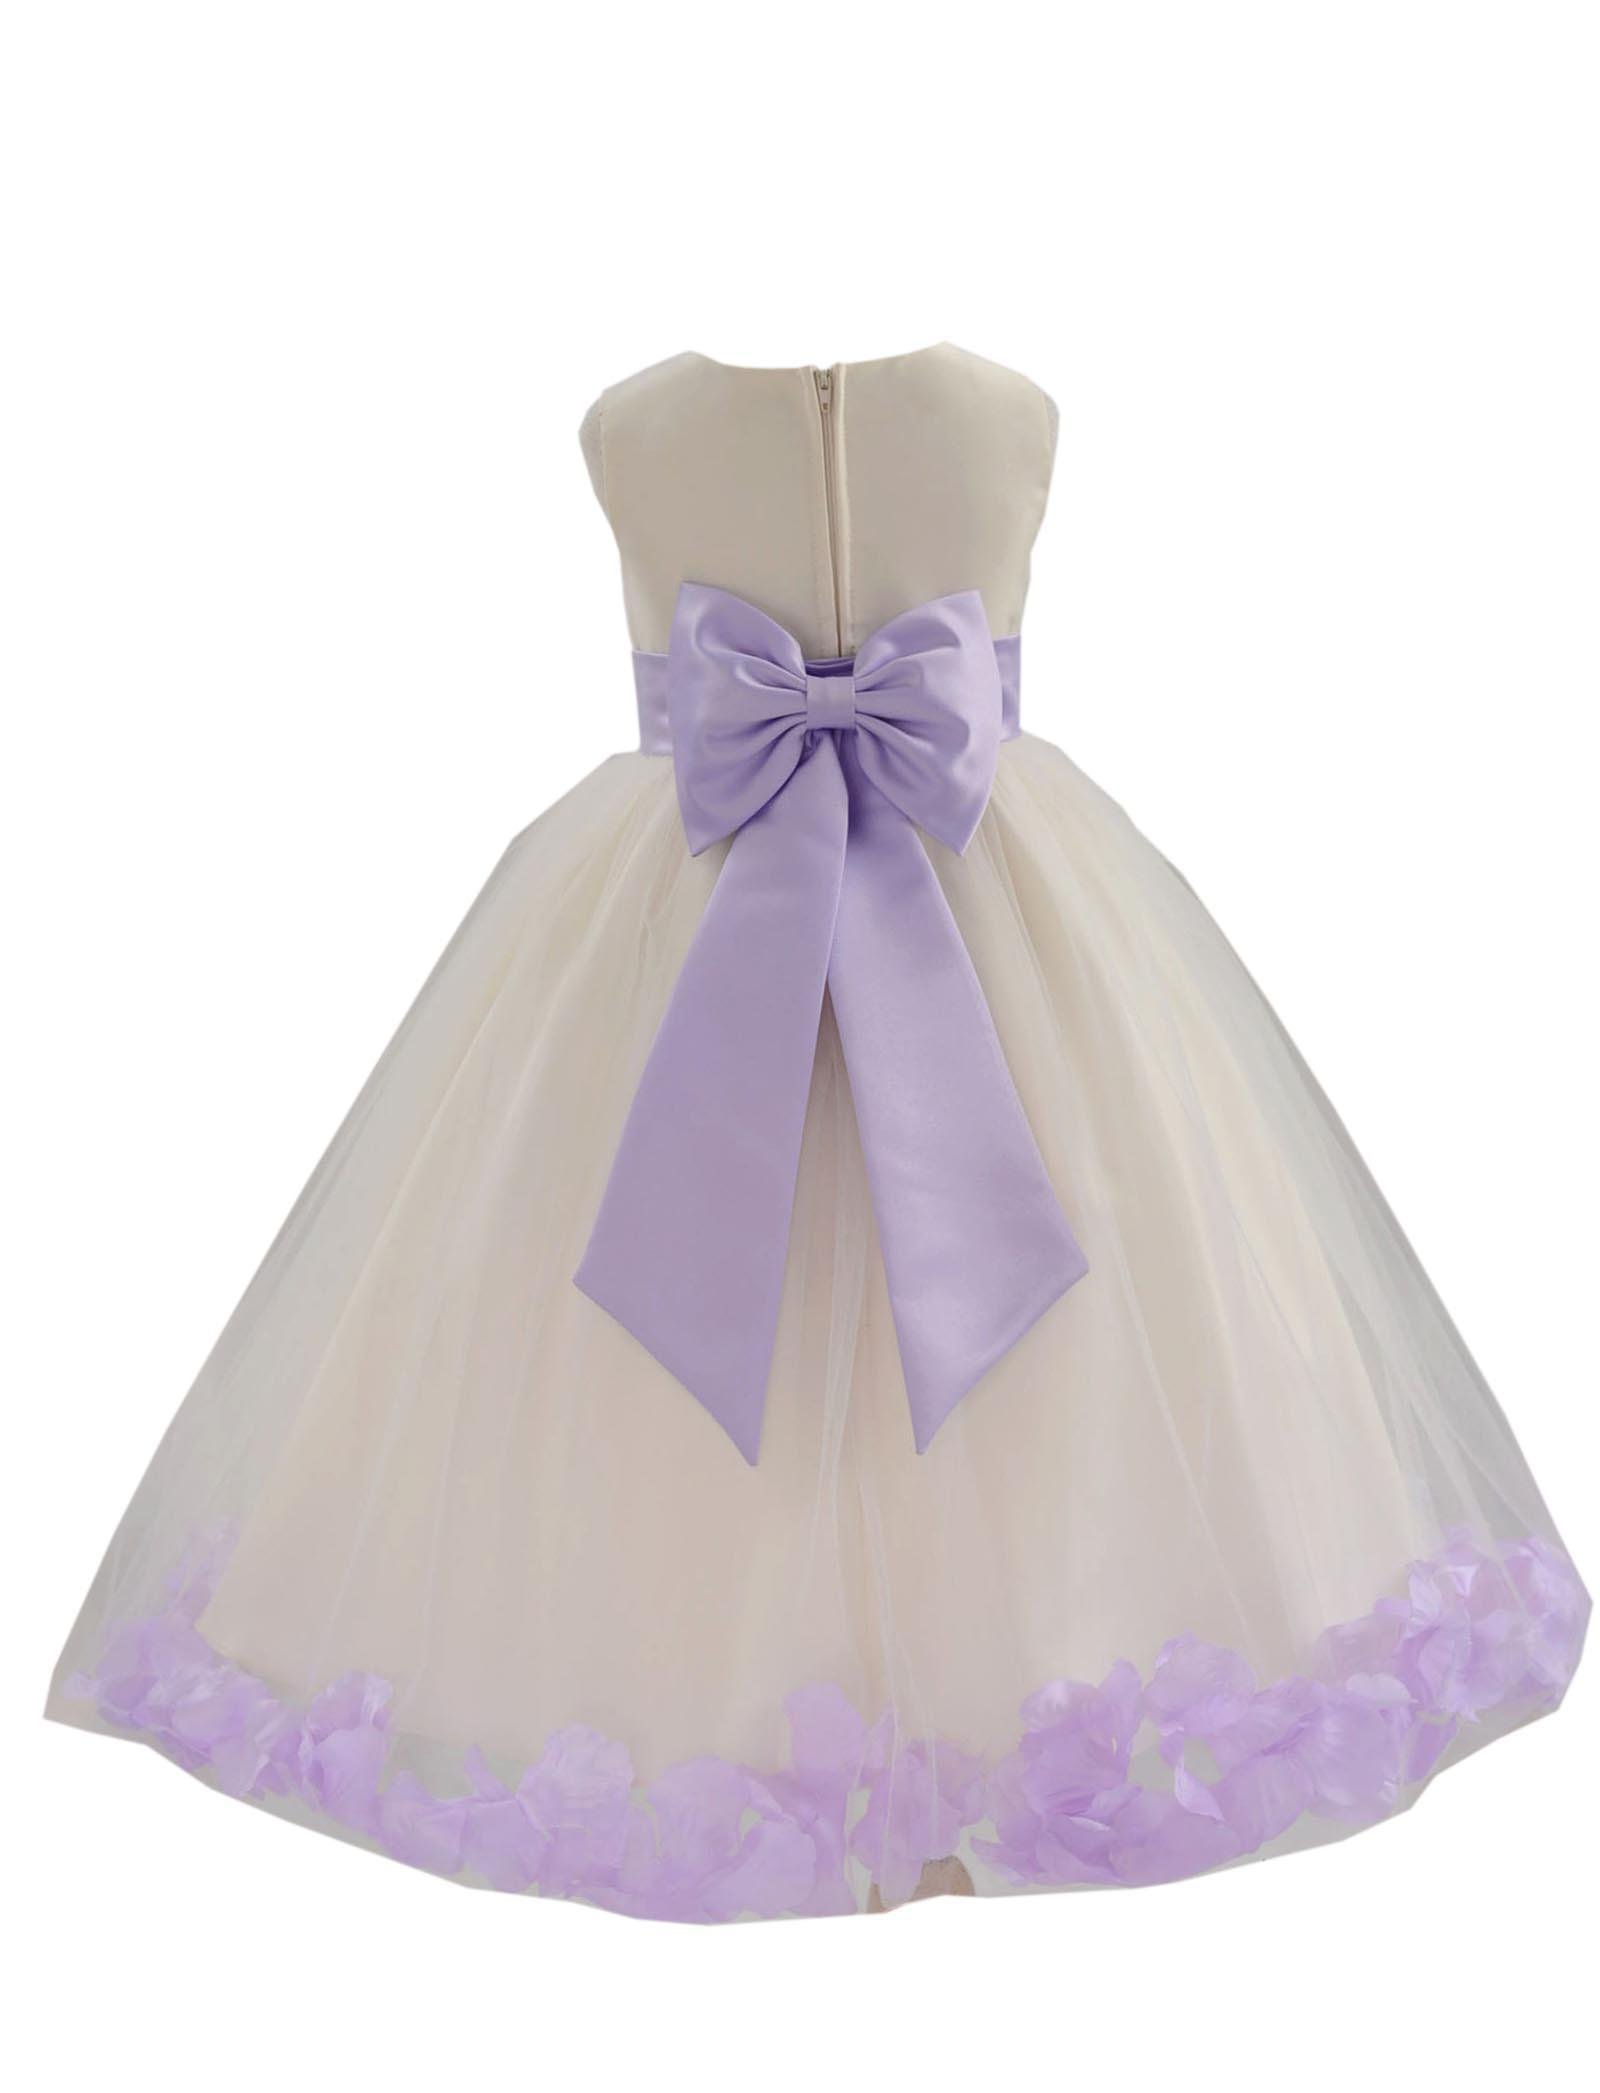 fd9732de7a9 Wedding Pageant Flower Petals Girl Ivory Dress with Bow Tie Sash 302a  product image